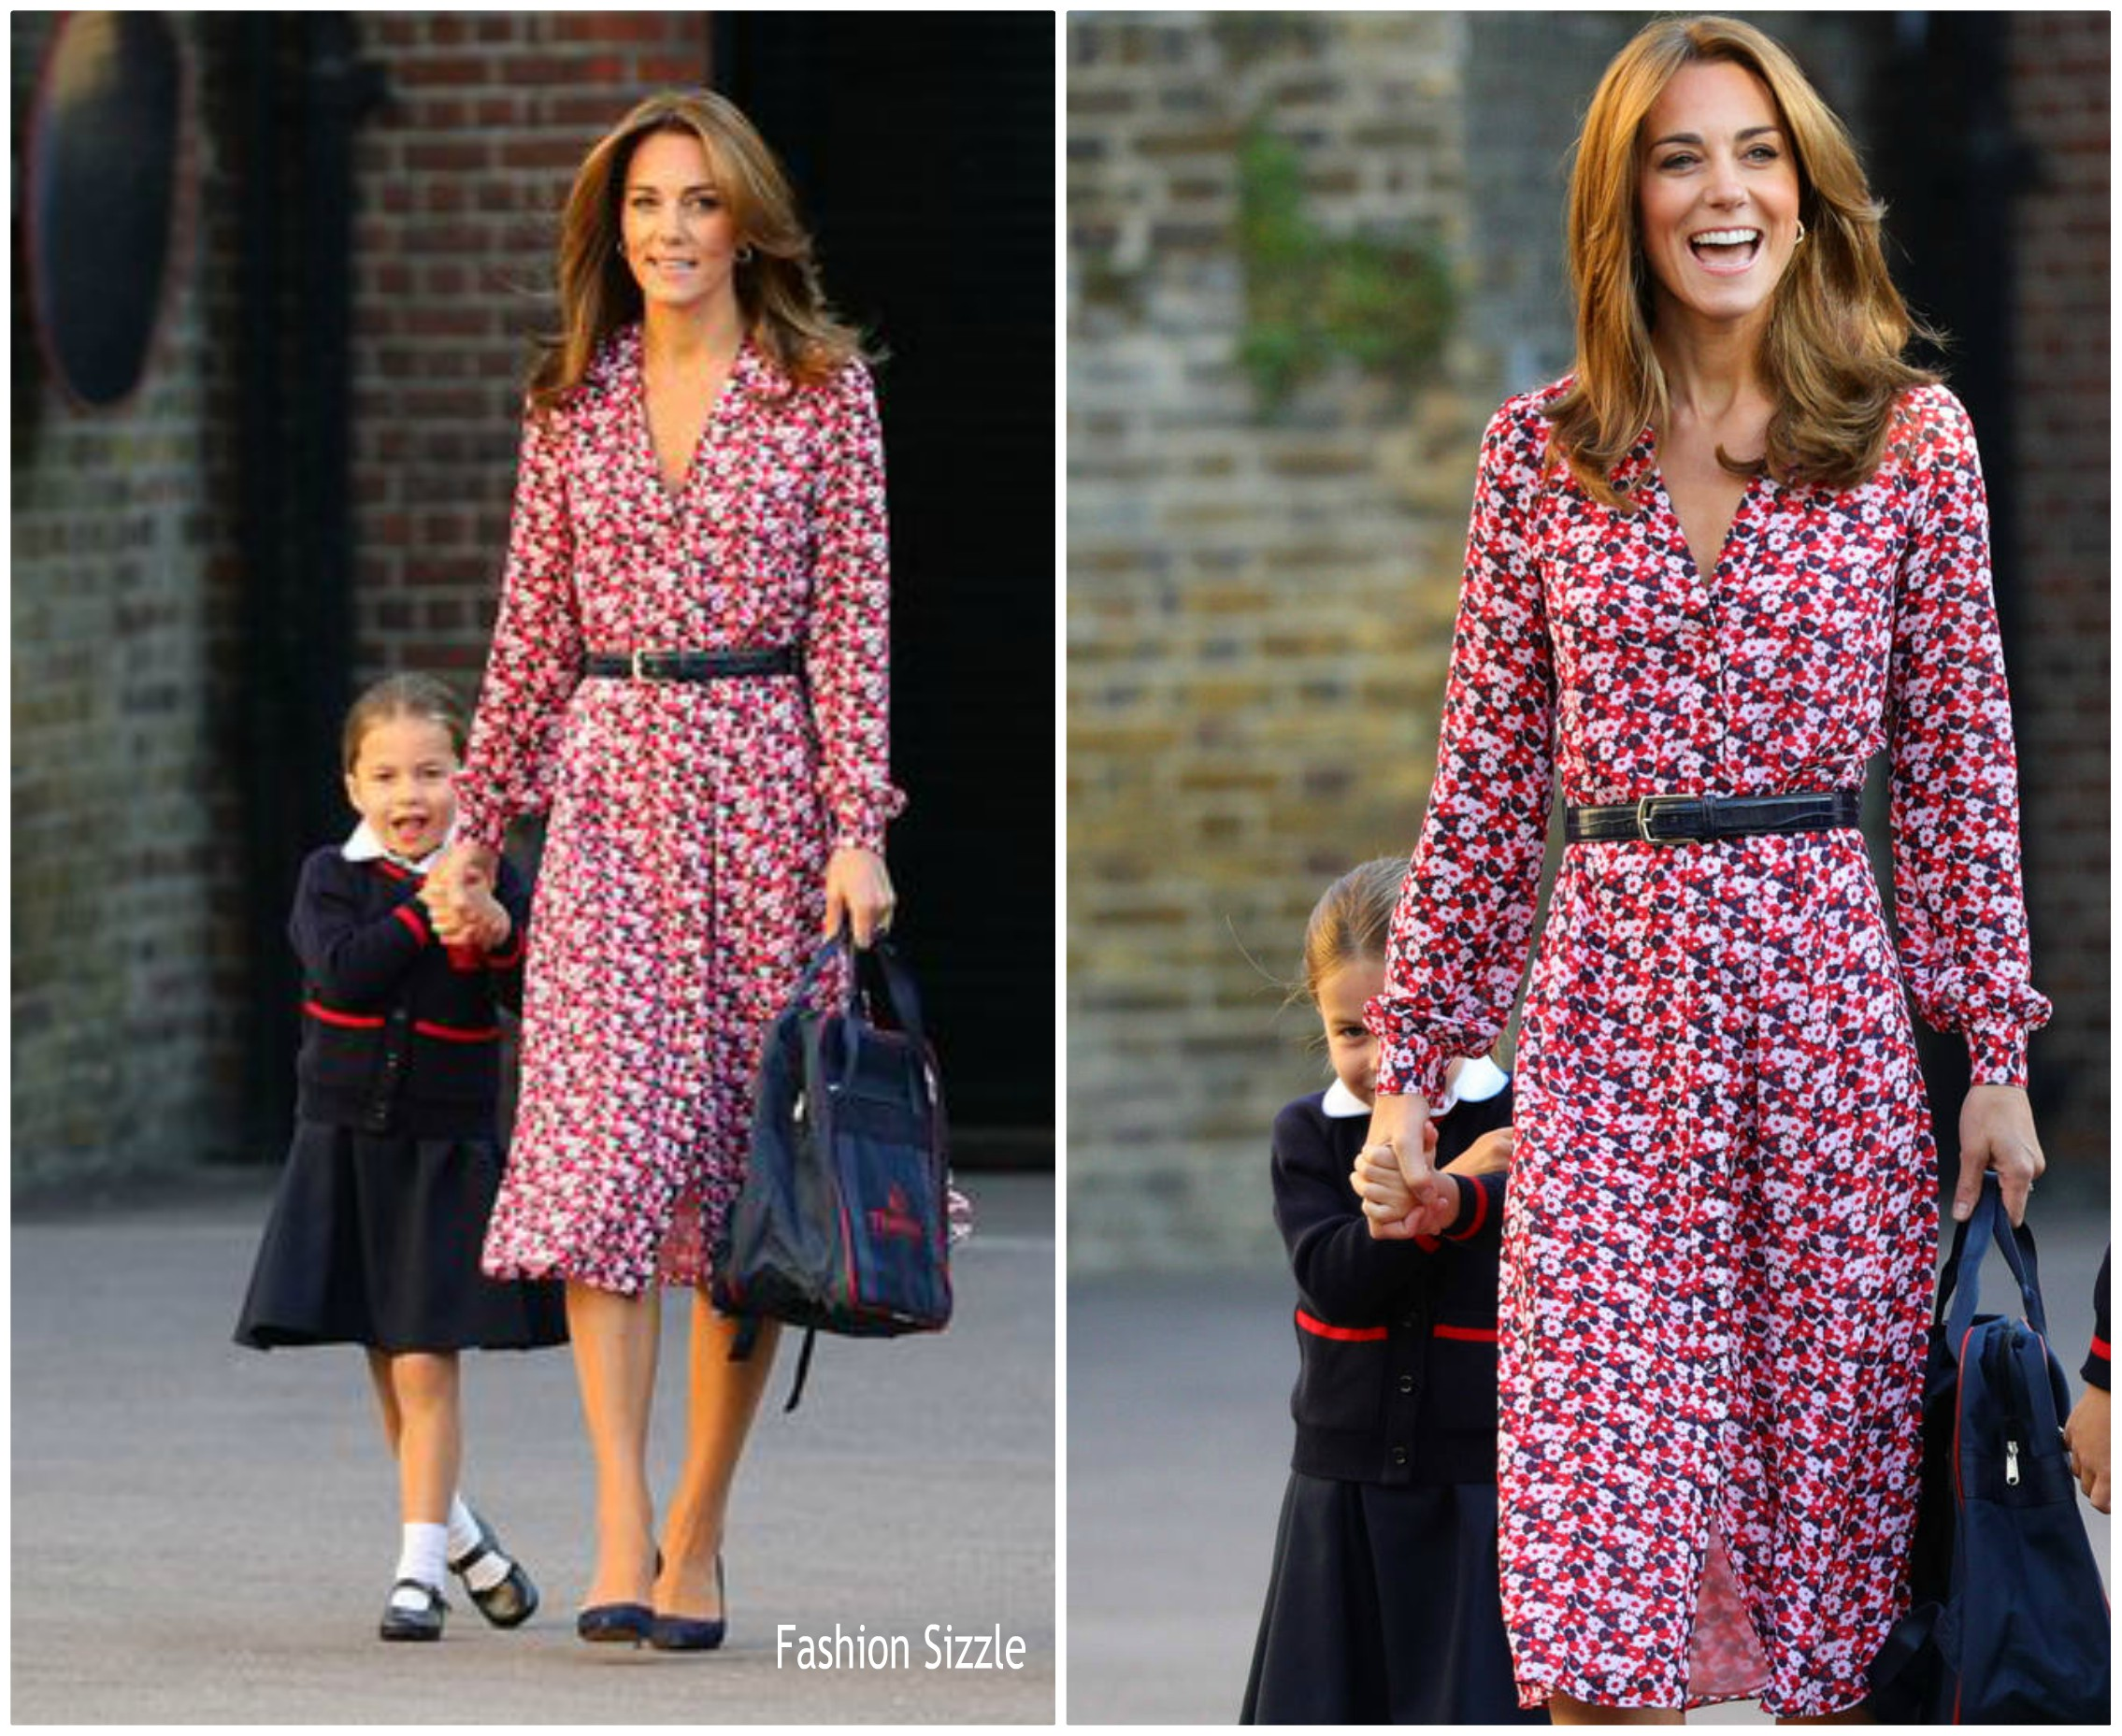 catherine-duchess-of-cambridge-in-michael-kors-princess-charlottes-first-day-at-school